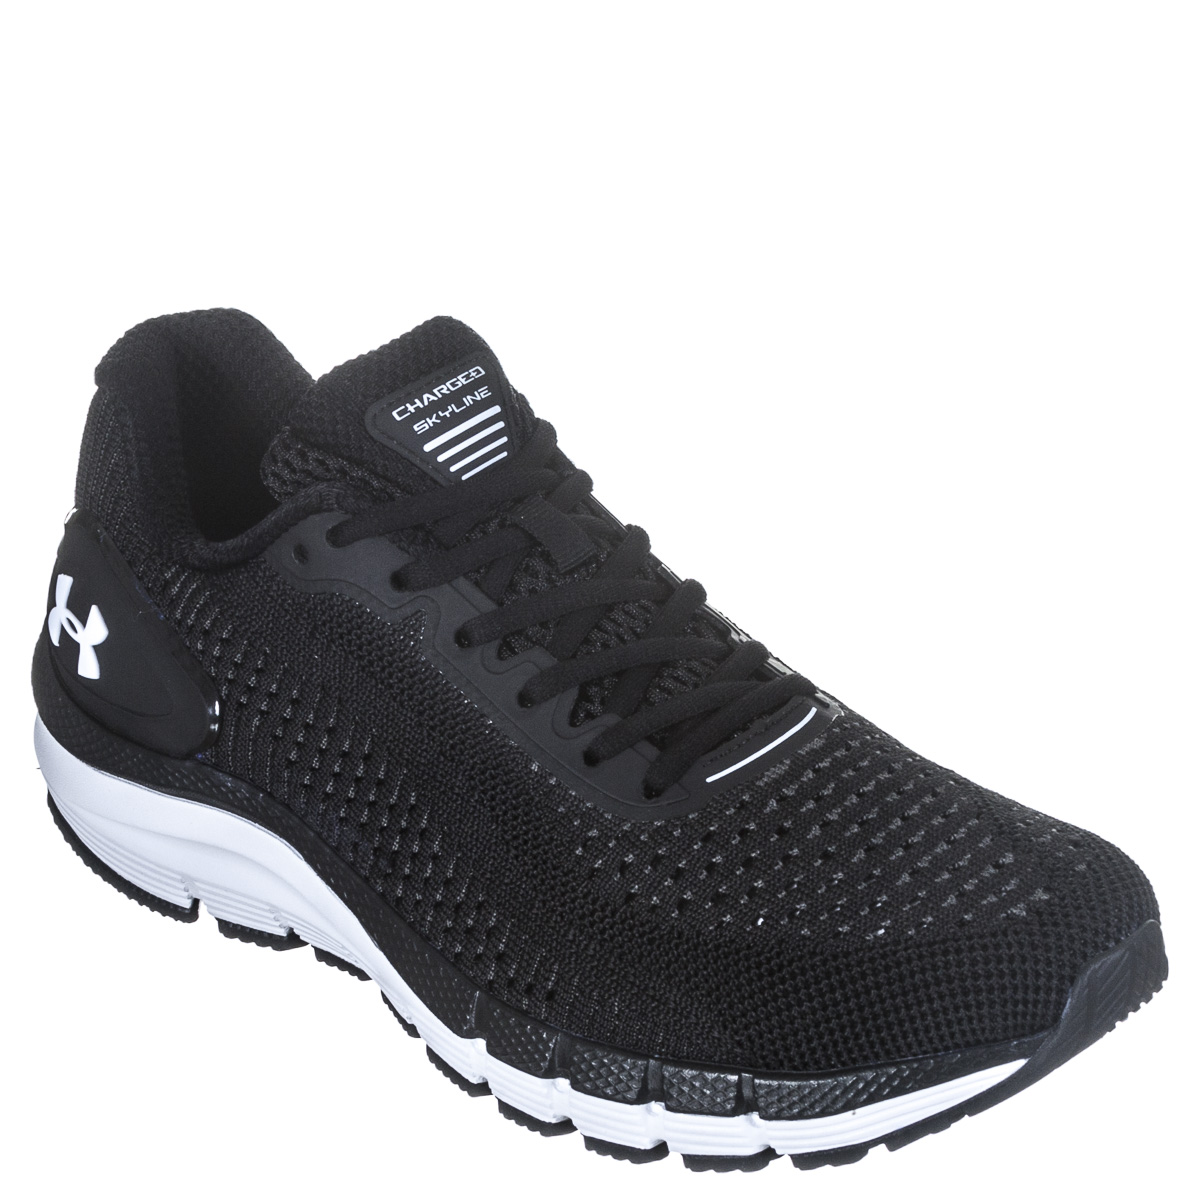 Tênis Under Armour Charged Skyline Masculino Casual - Preto